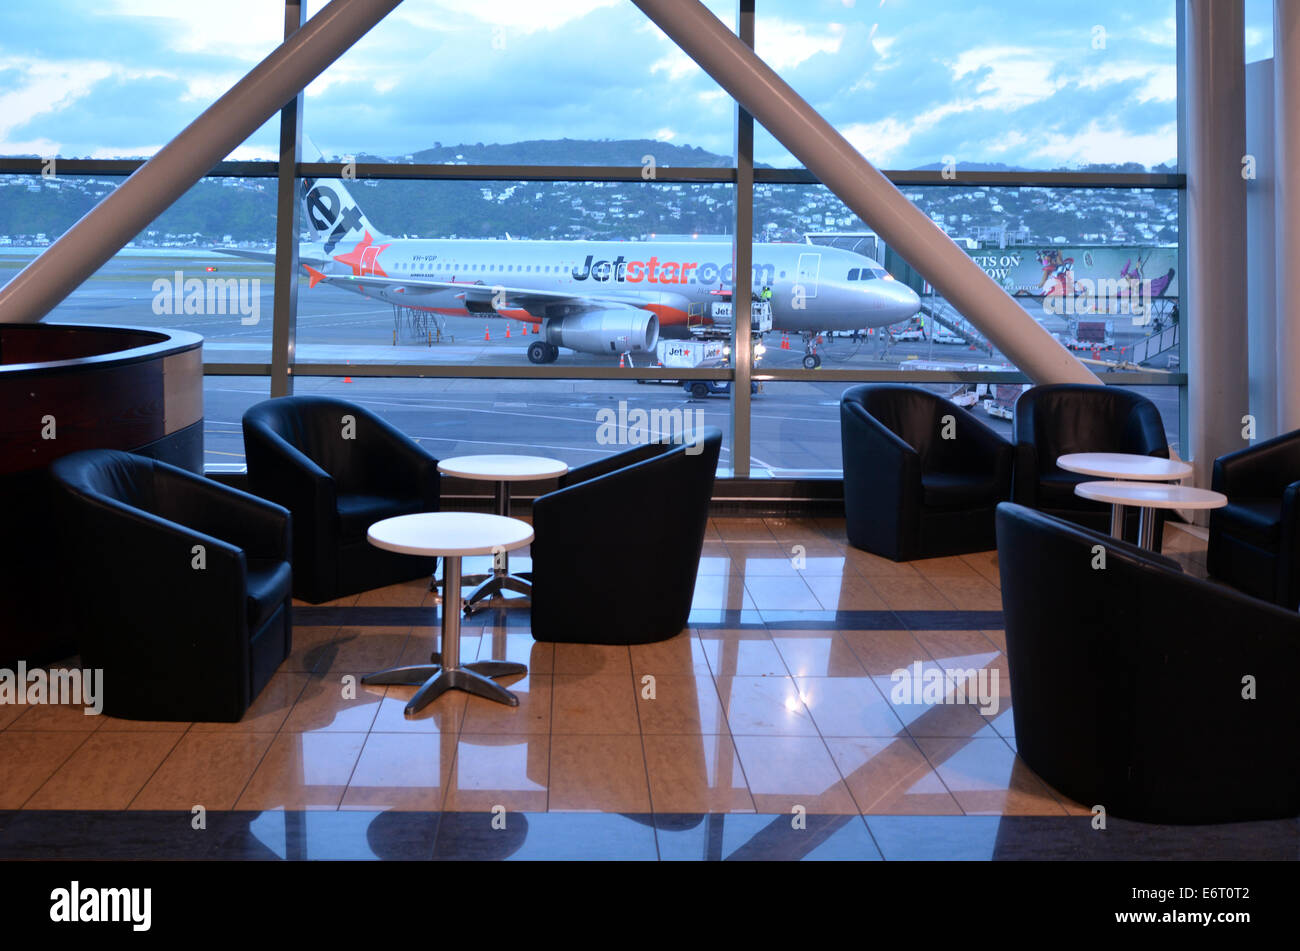 WELLINGTON - AUG 21 2014:Jetstar Airways plane at Wellington International Airport.The airline was established by - Stock Image